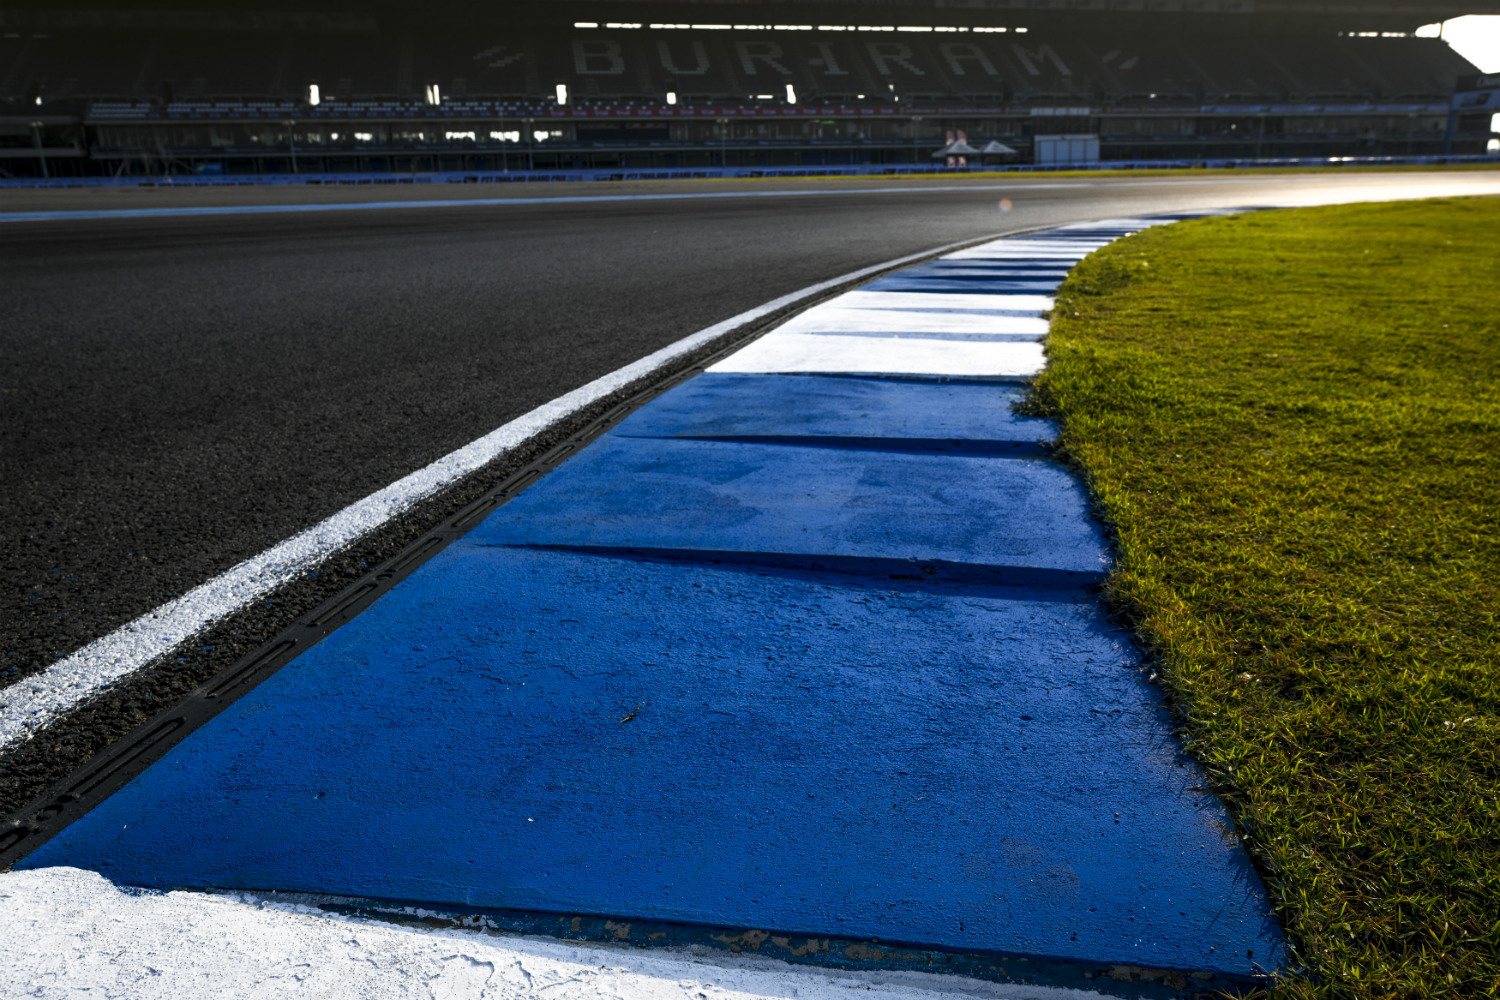 The calm before the storm: The Buriram circuit in Thailand (MotoGP)